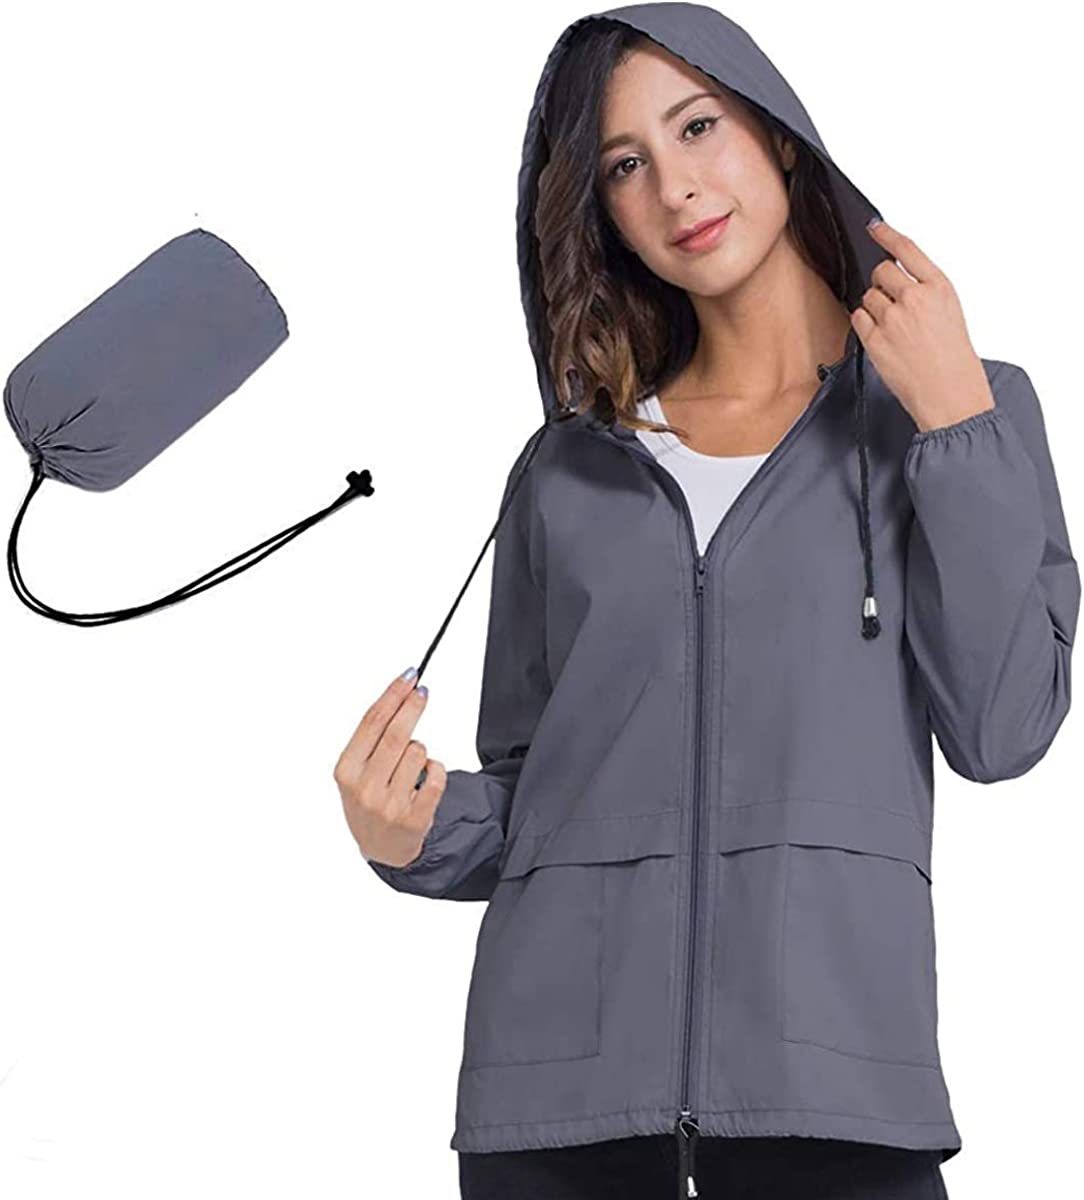 Spring new work one after another JTANIB Womens 67% OFF of fixed price Raincoat Windbreaker Lightweight Packab Waterproof